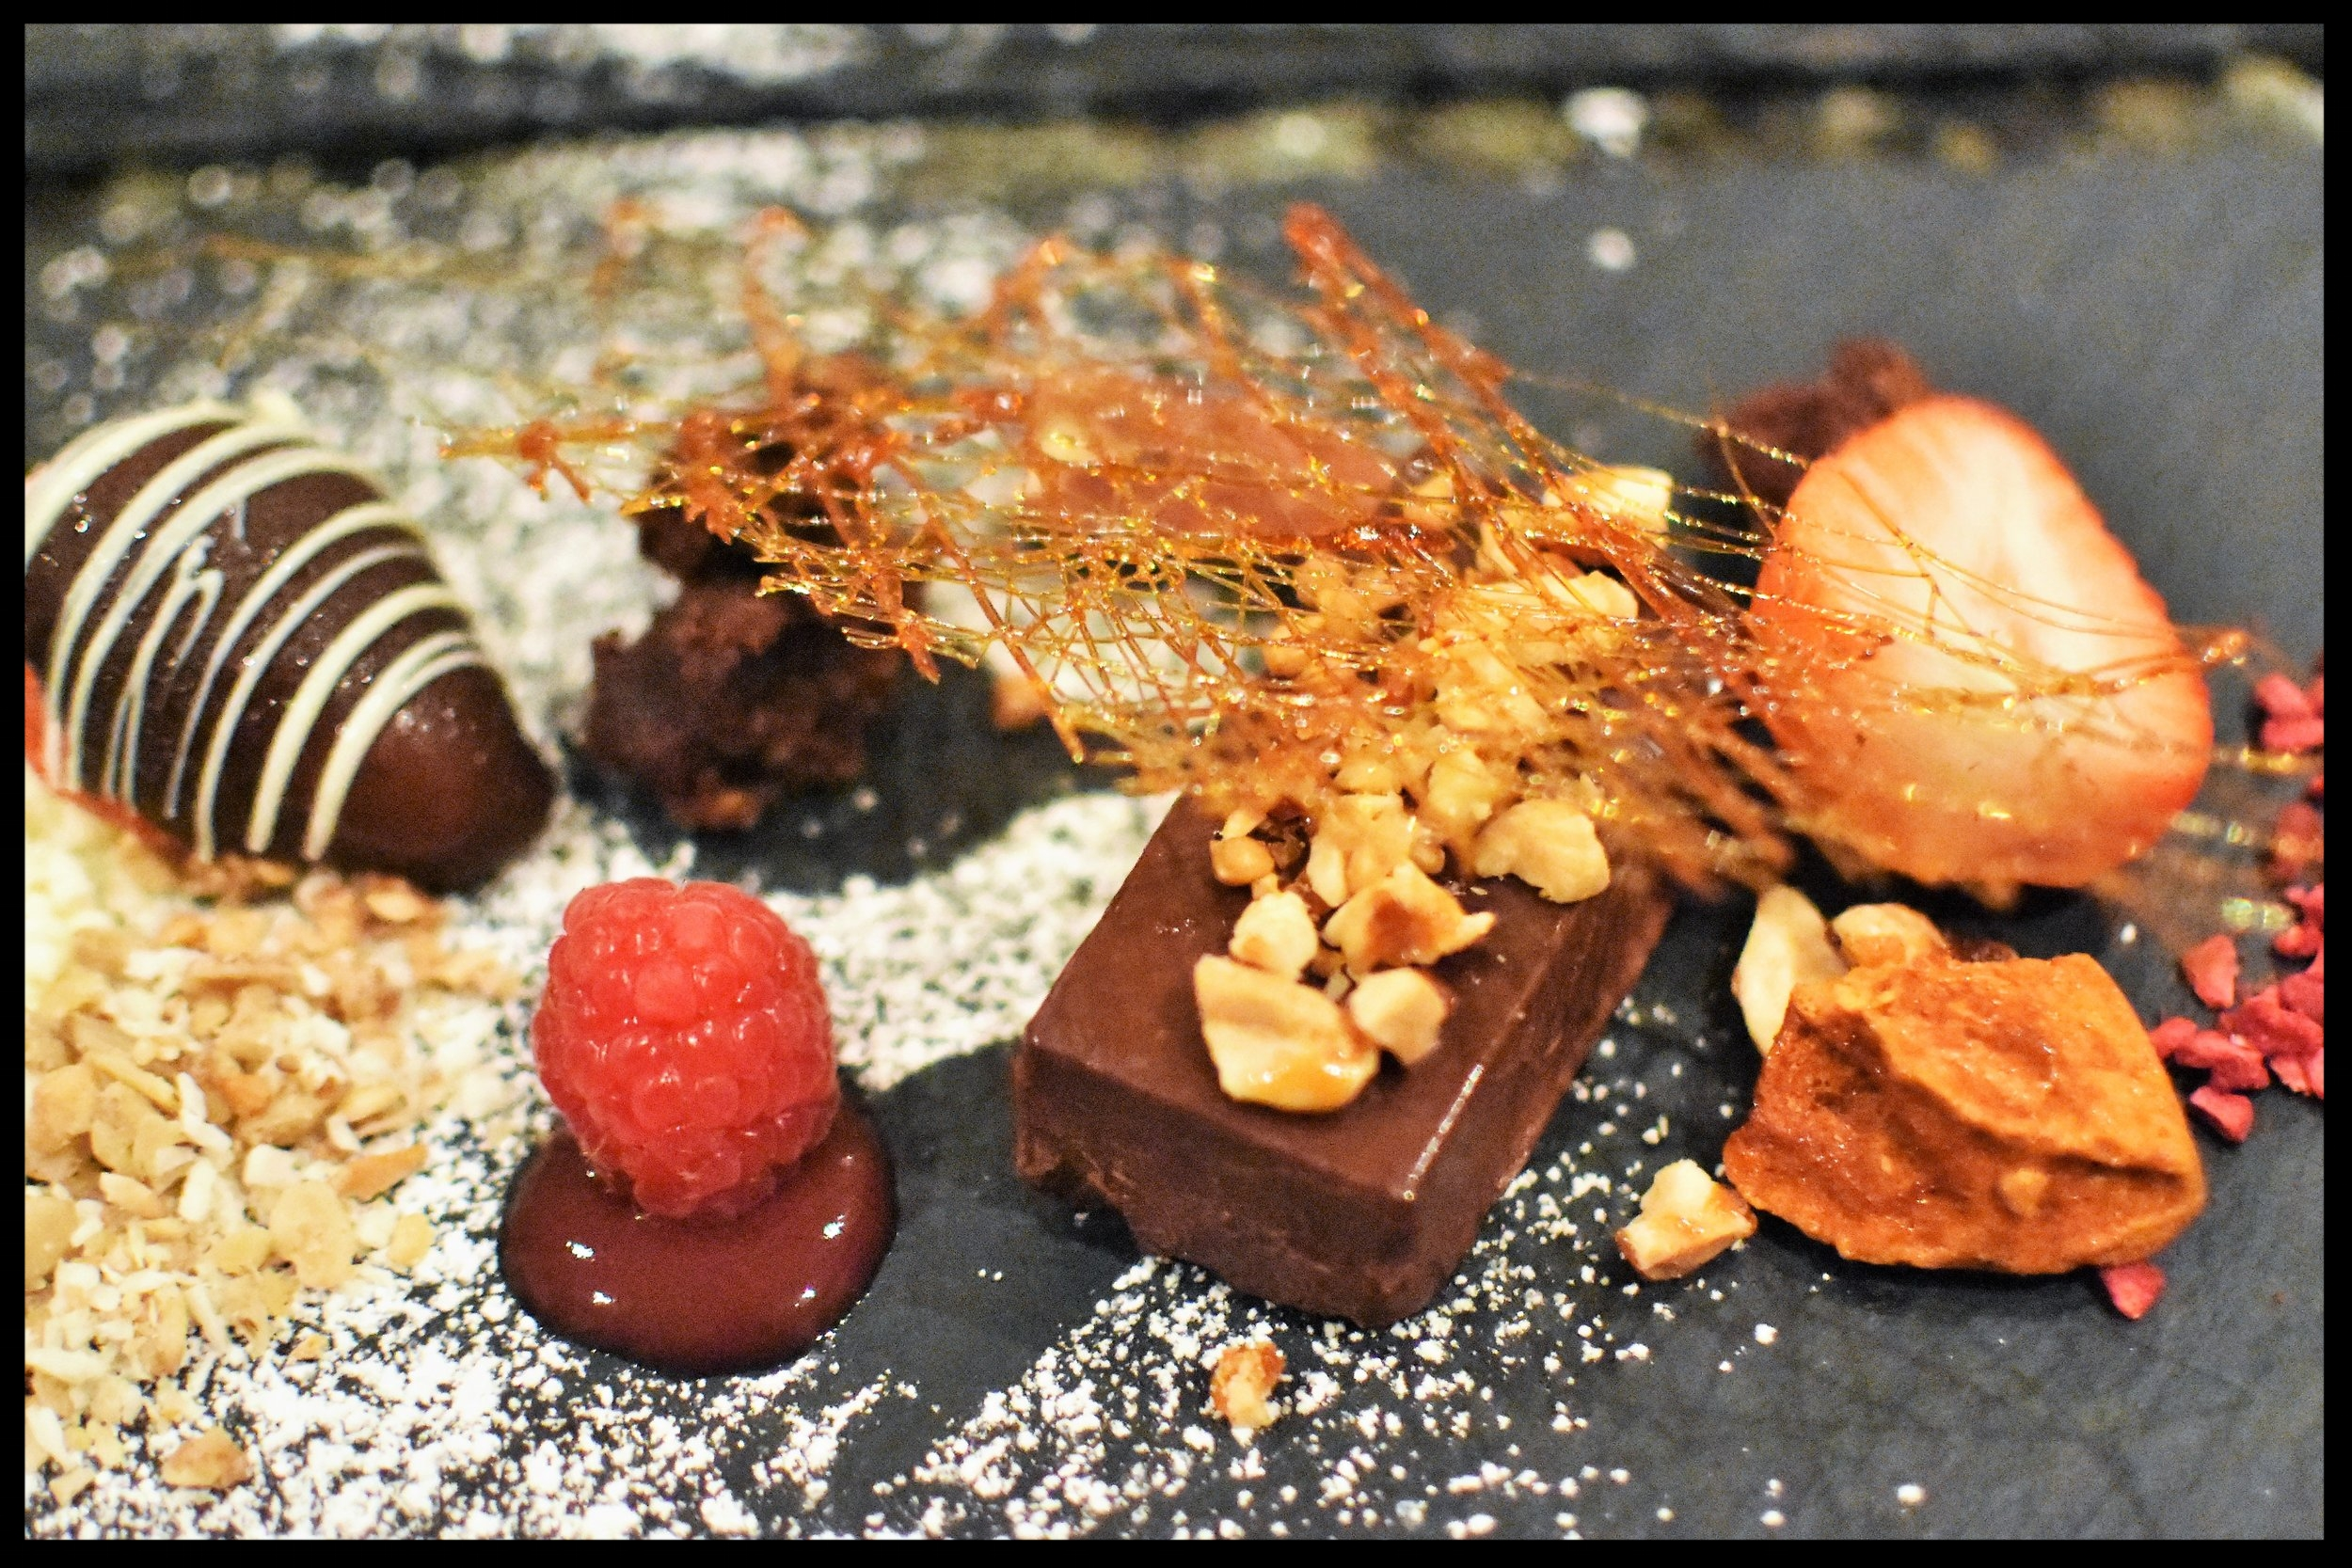 Chocolate and red berry dessert